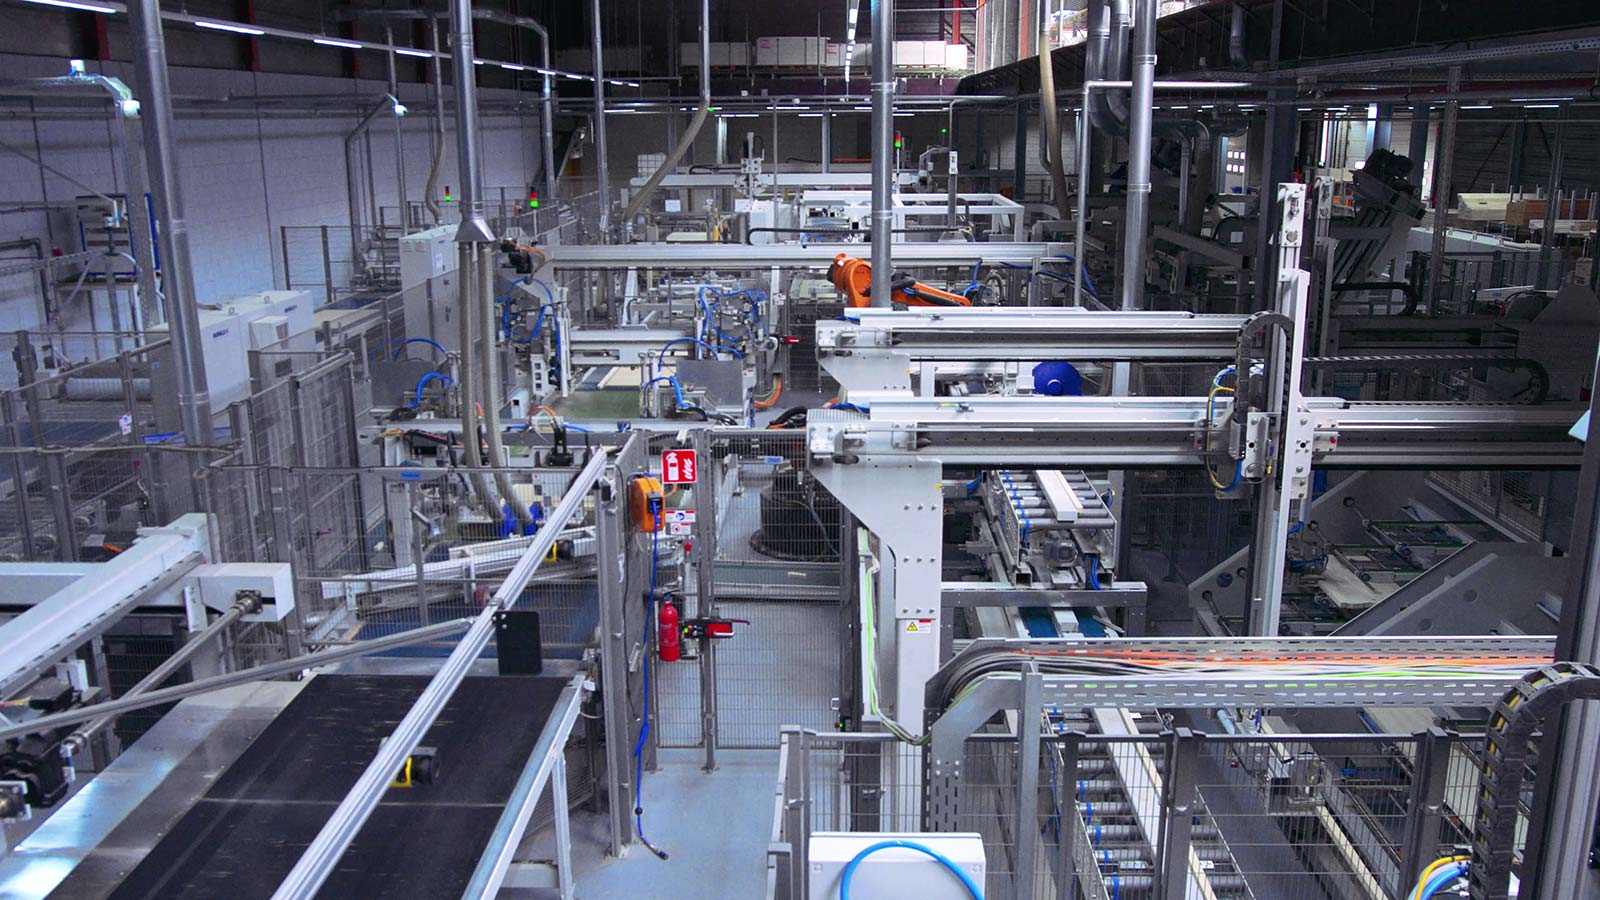 techniek-procesindustrie-fabriek-machinepark-video-filmproductie